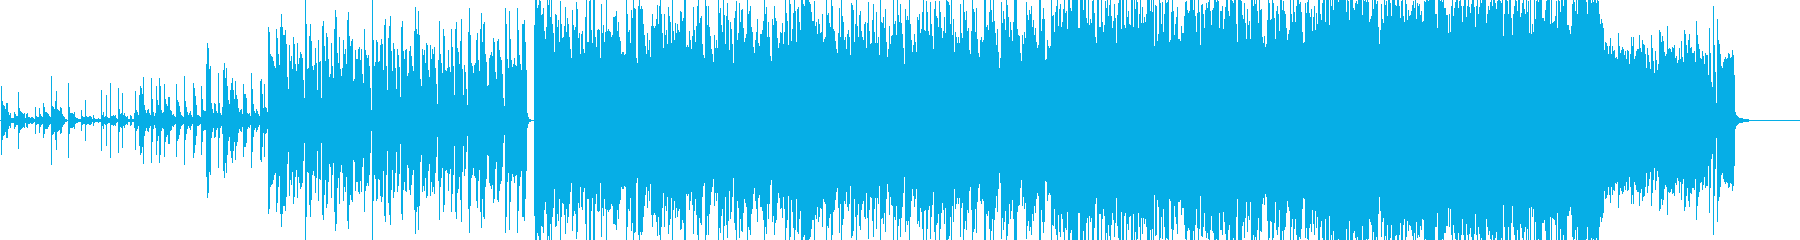 An instrumental feel with a distinctive feel of a drum's reproduced waveform